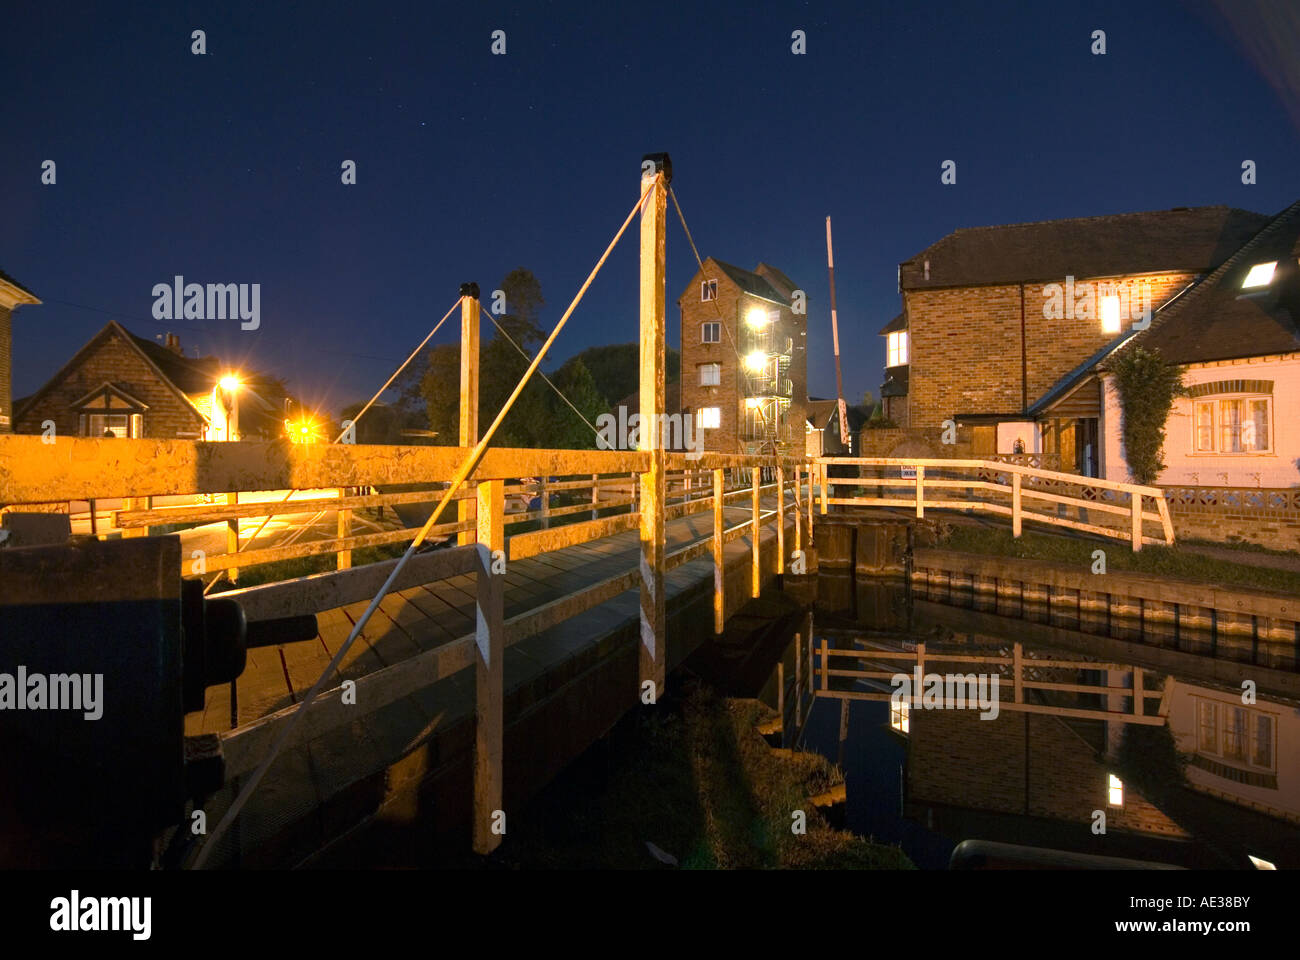 PICTURE CREDIT Doug Blane Swing bridge at night in Newbury on the kennet and avon canalStock Photo